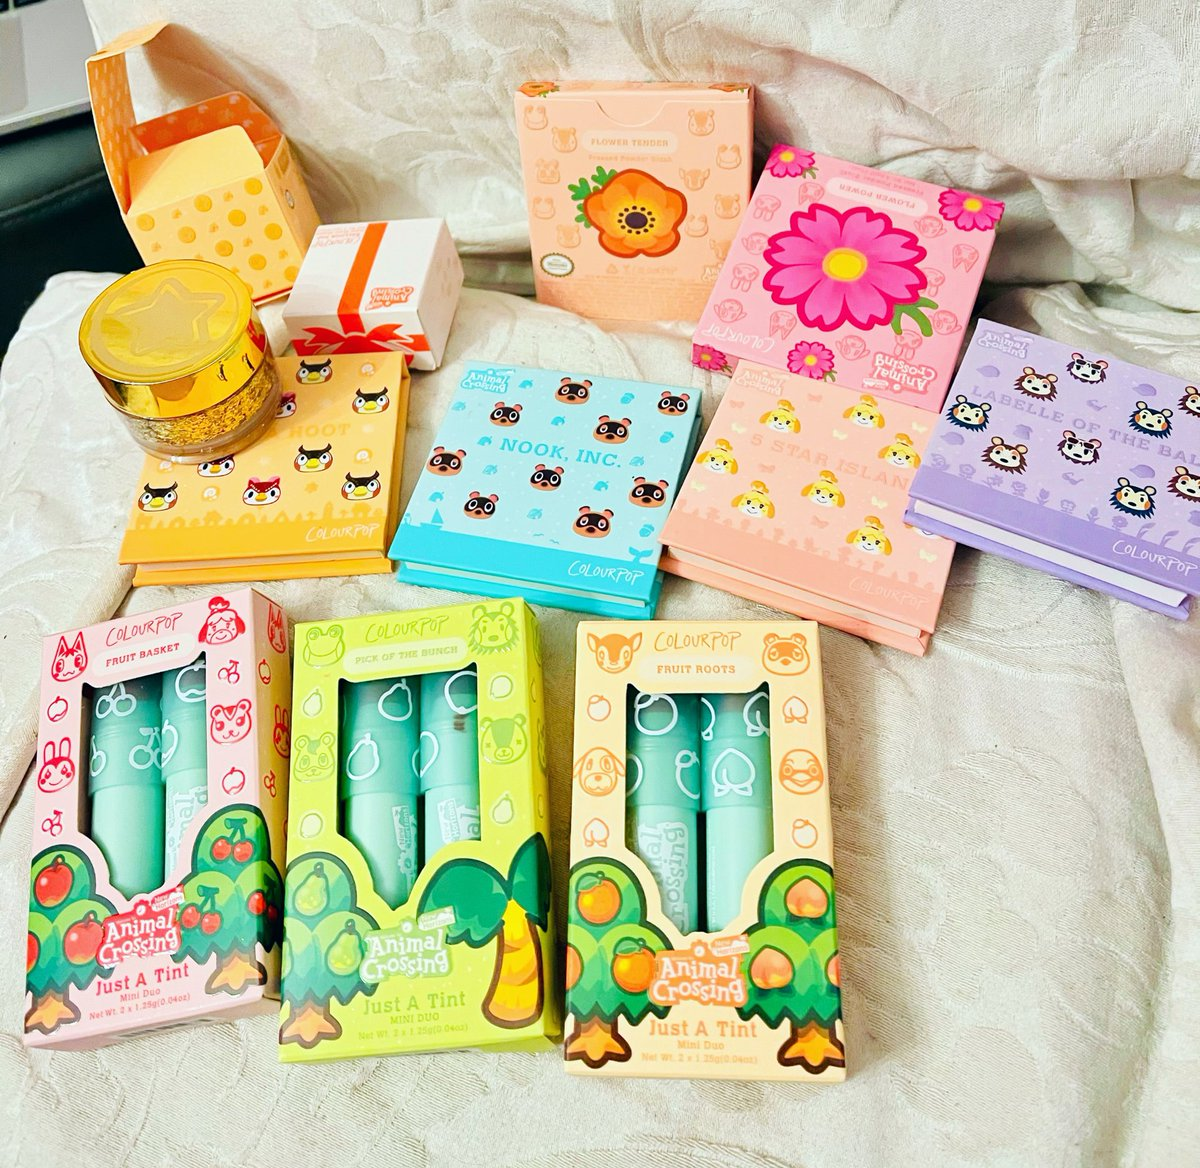 Wanted to post another pic of the Animal Crossing collection cause I feel bad that I didn't post a proper pic yesterday!! Haha but it's all adorable, thank you again @ColourPopCo!! 💚💚